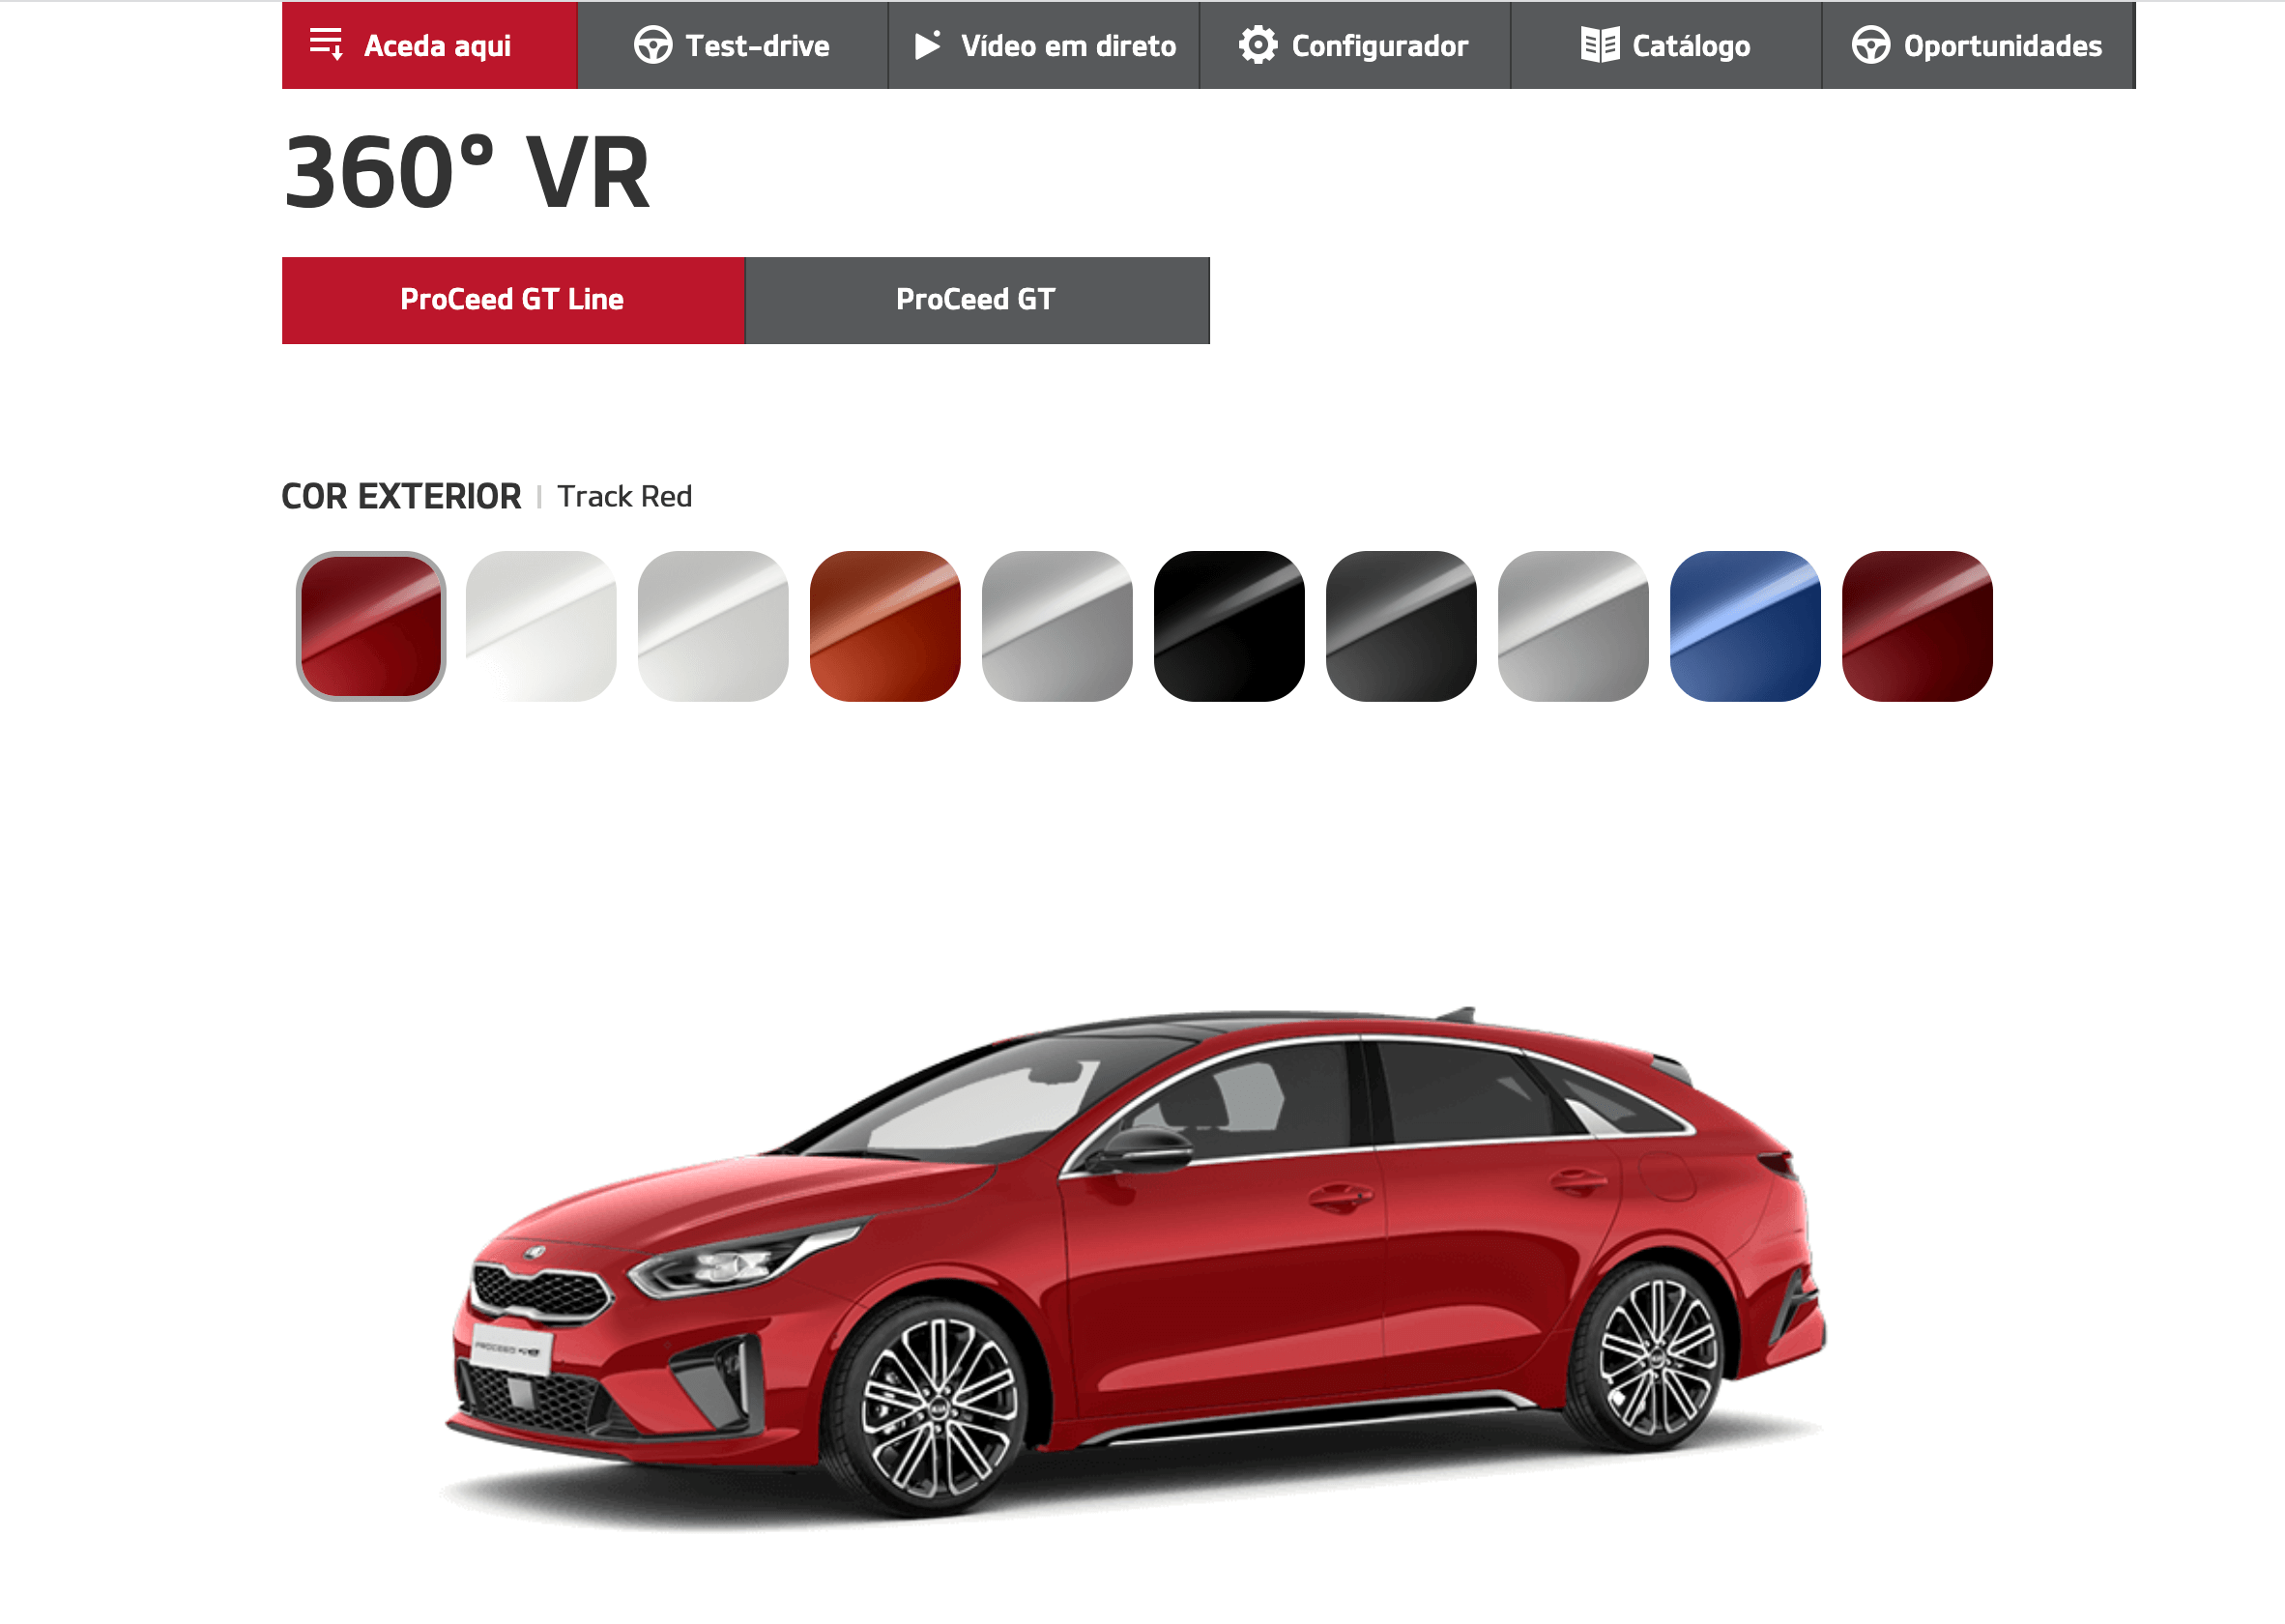 Product Page - VR